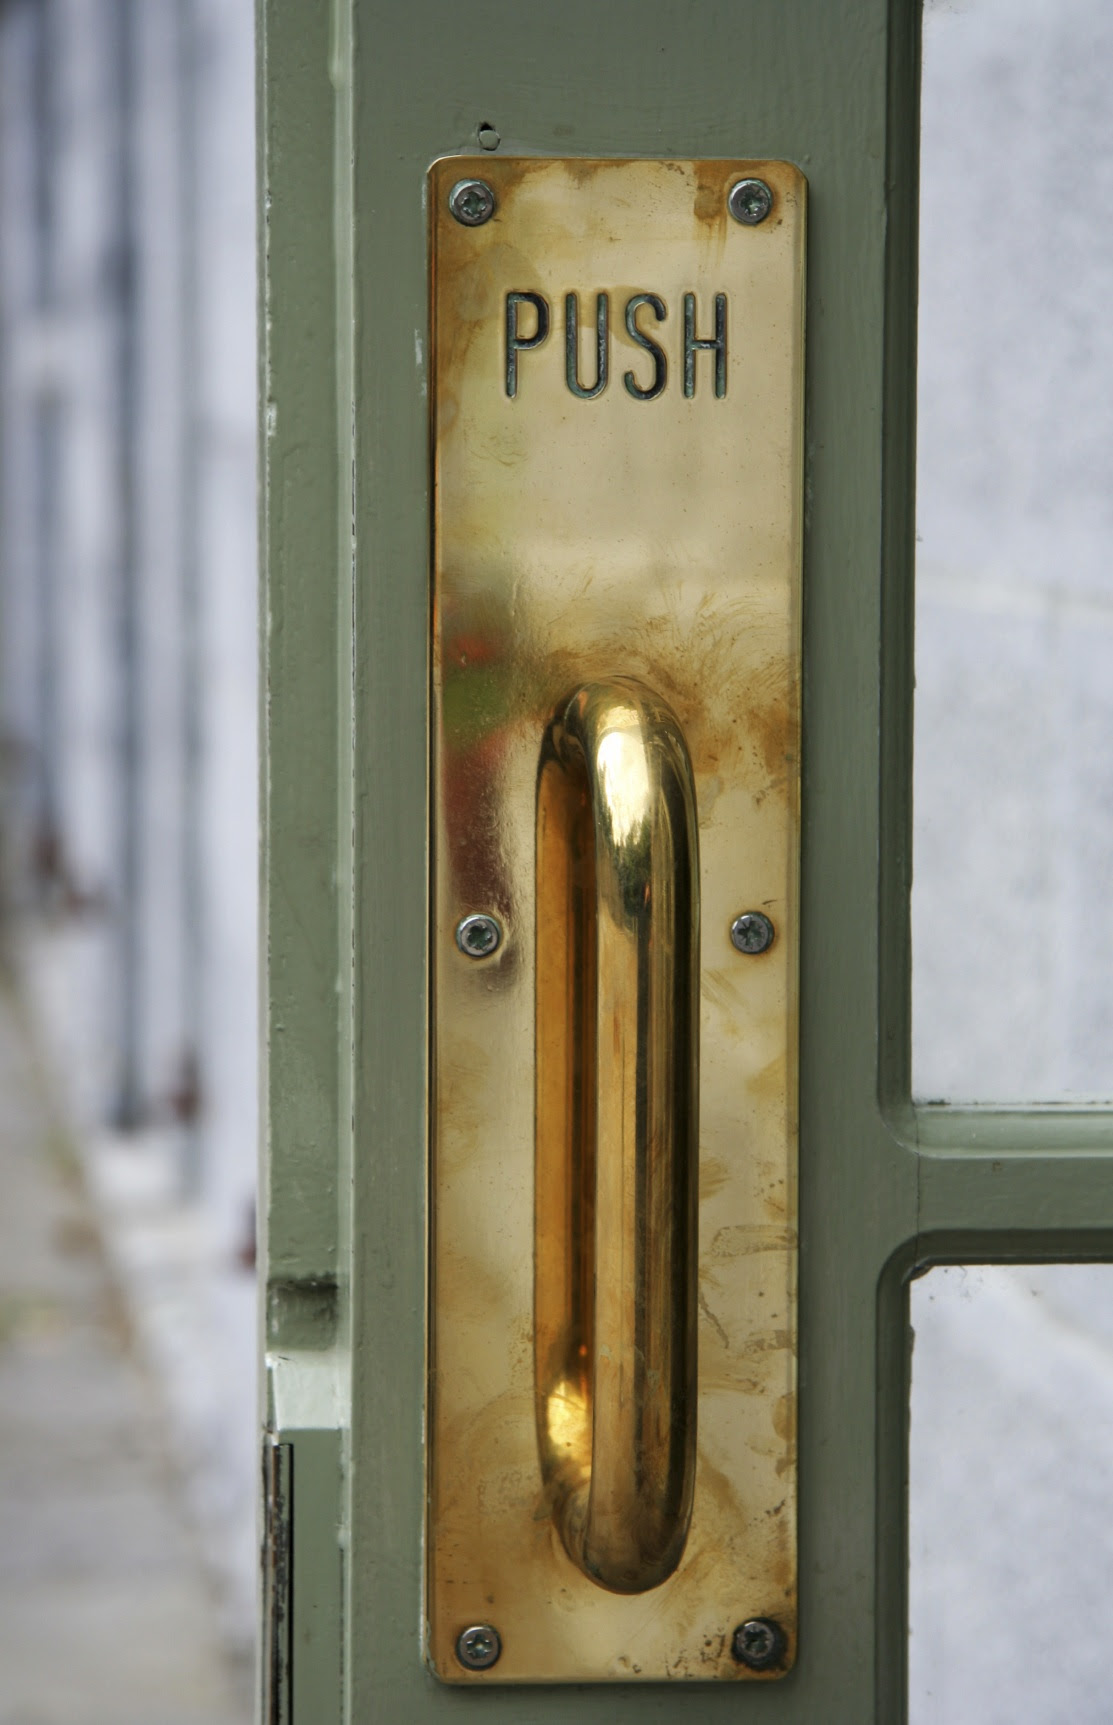 Door handle that visually says pull, but has a sign that says push